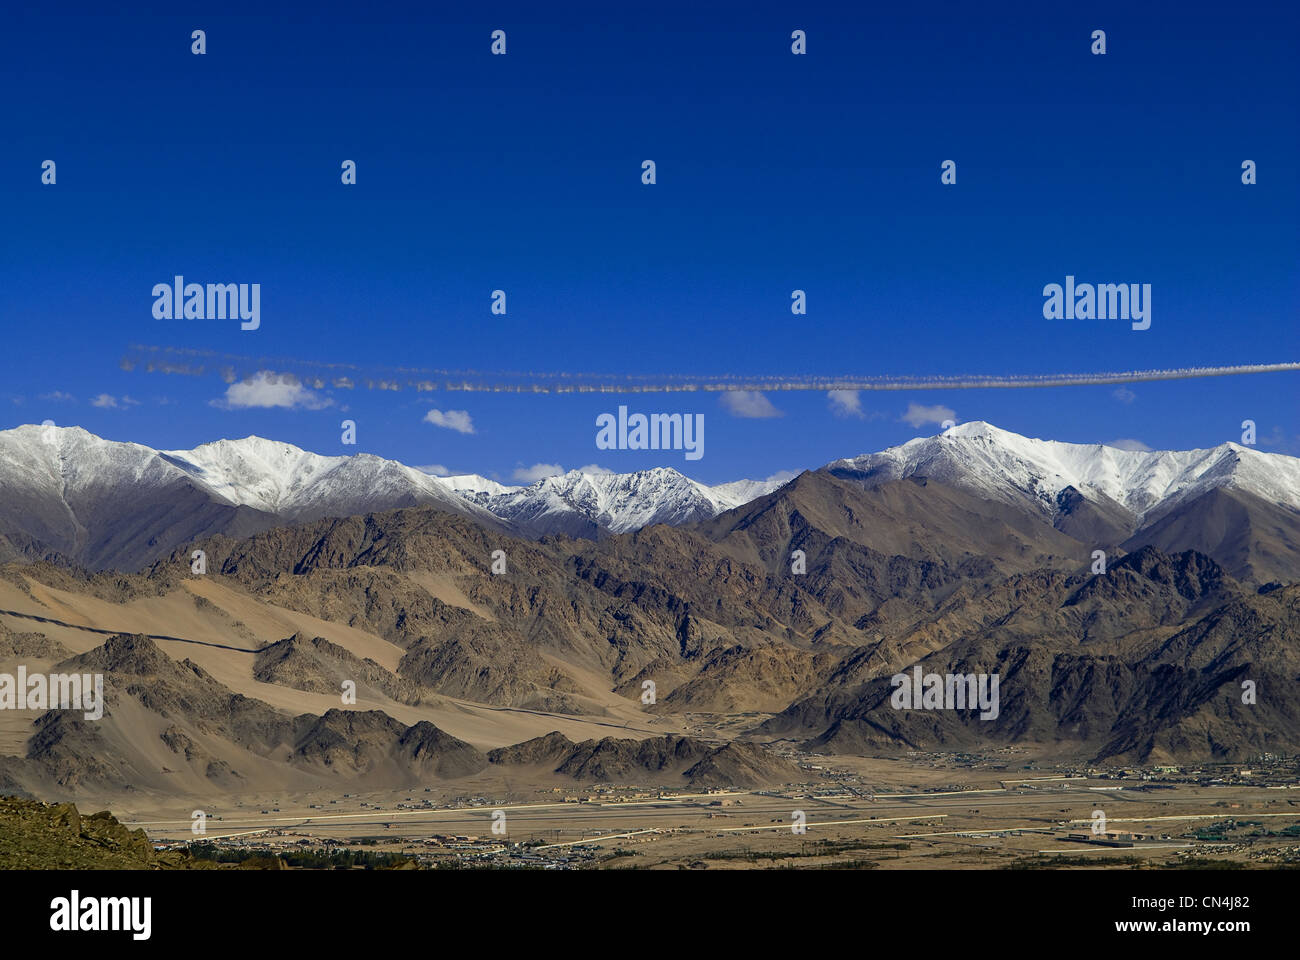 India, Jammu and Kashmir State, Ladakh Region, Himalayan foothills, nearby Leh Airport - Stock Image